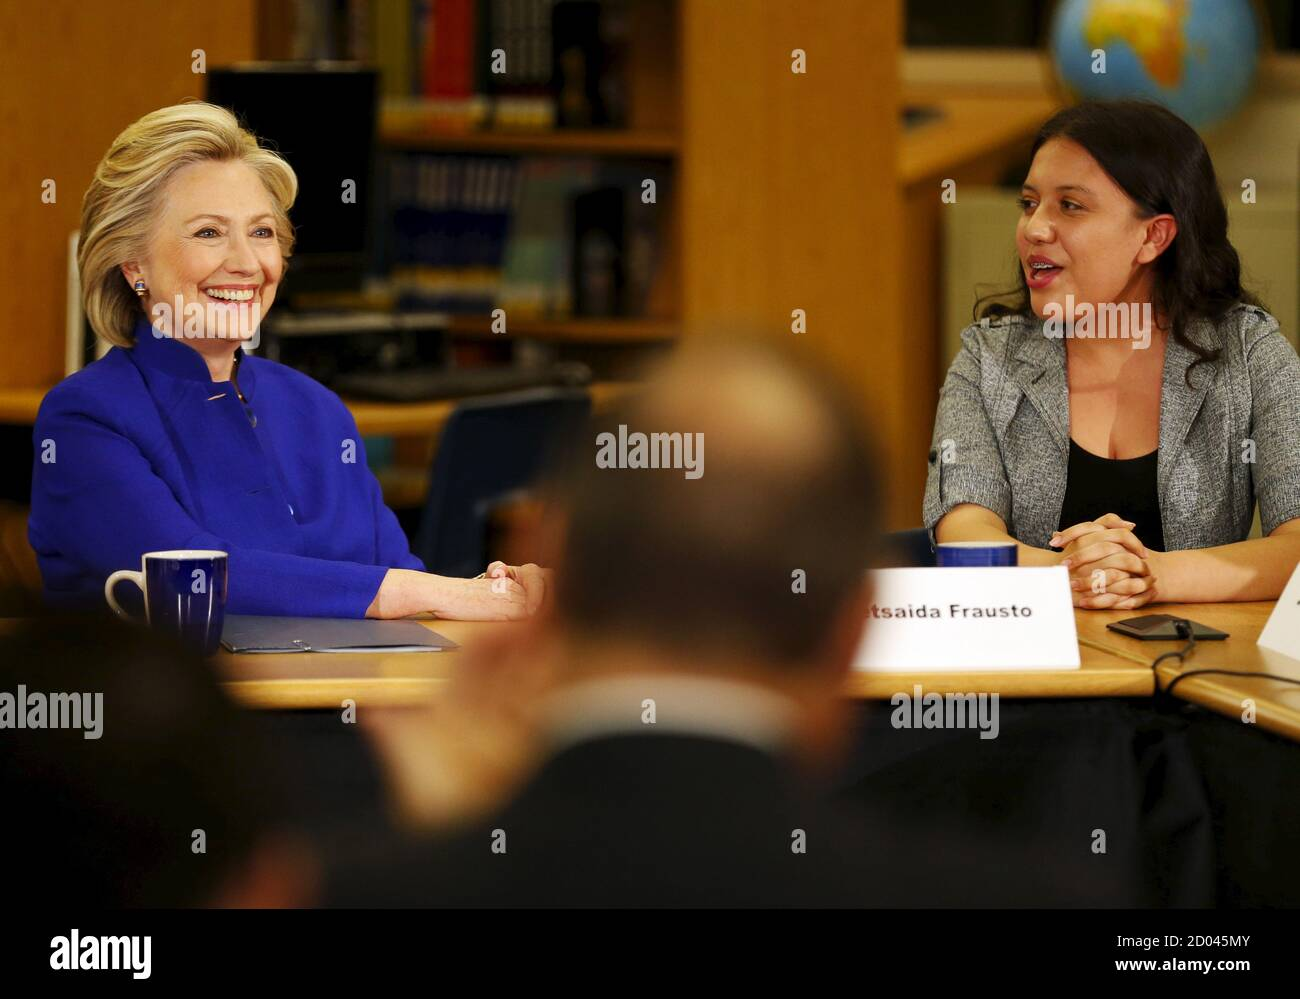 Former U.S. Secretary of State Hillary Clinton talks with 9th grade student Betsaida Frausto during a roundtable of young Nevadans discussing immigration, as she campaigns for the 2016 Democratic presidential nomination, at Rancho High School in Las Vegas, Nevada May 5, 2015.  REUTERS/Mike Blake Stock Photo